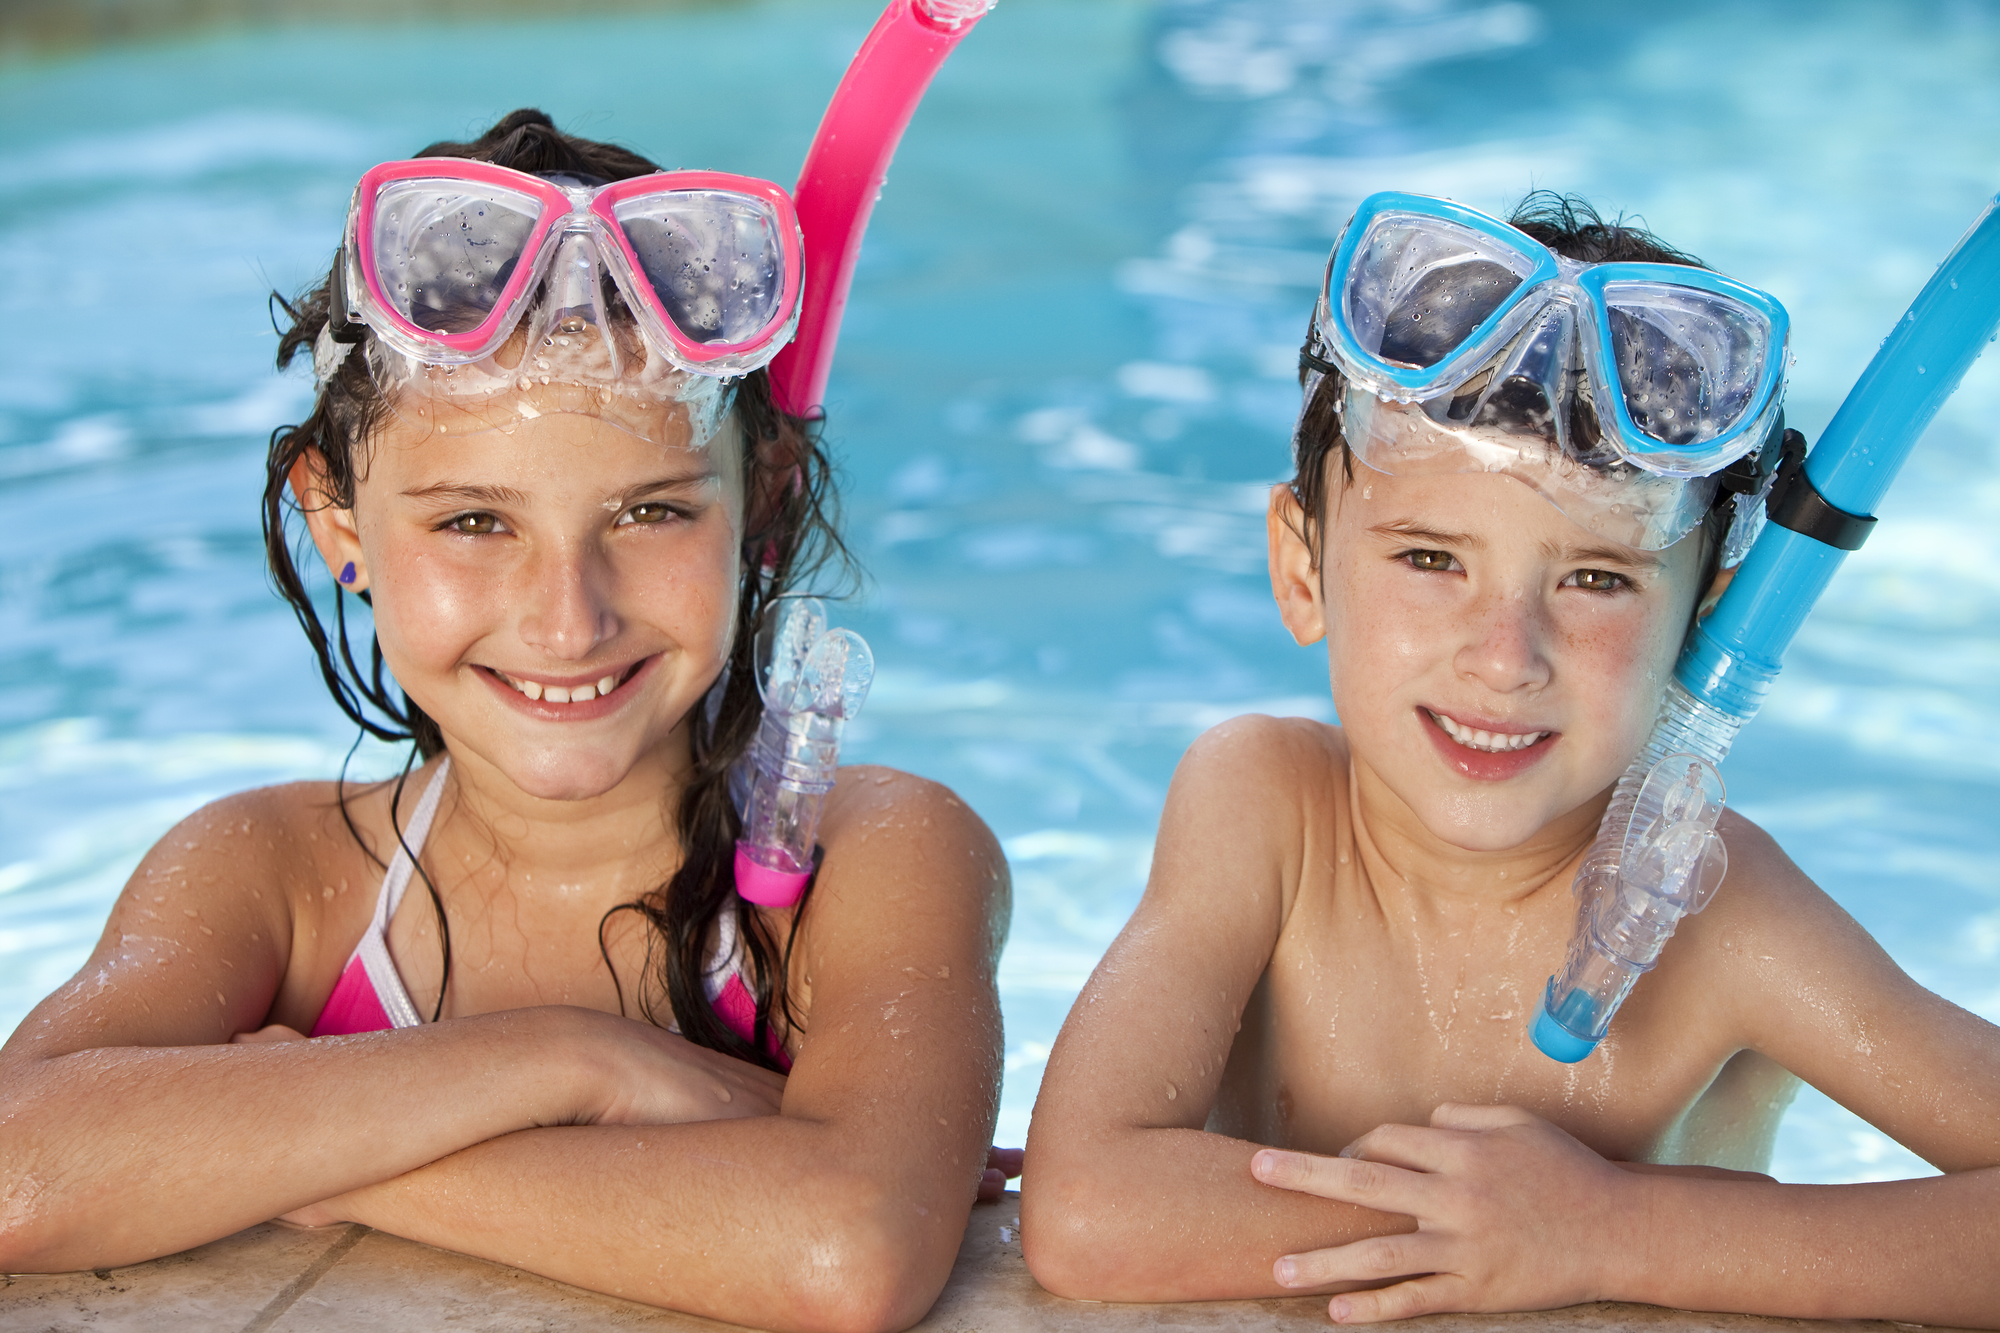 Pool Parties and Head Lice: Is There A Correlation?